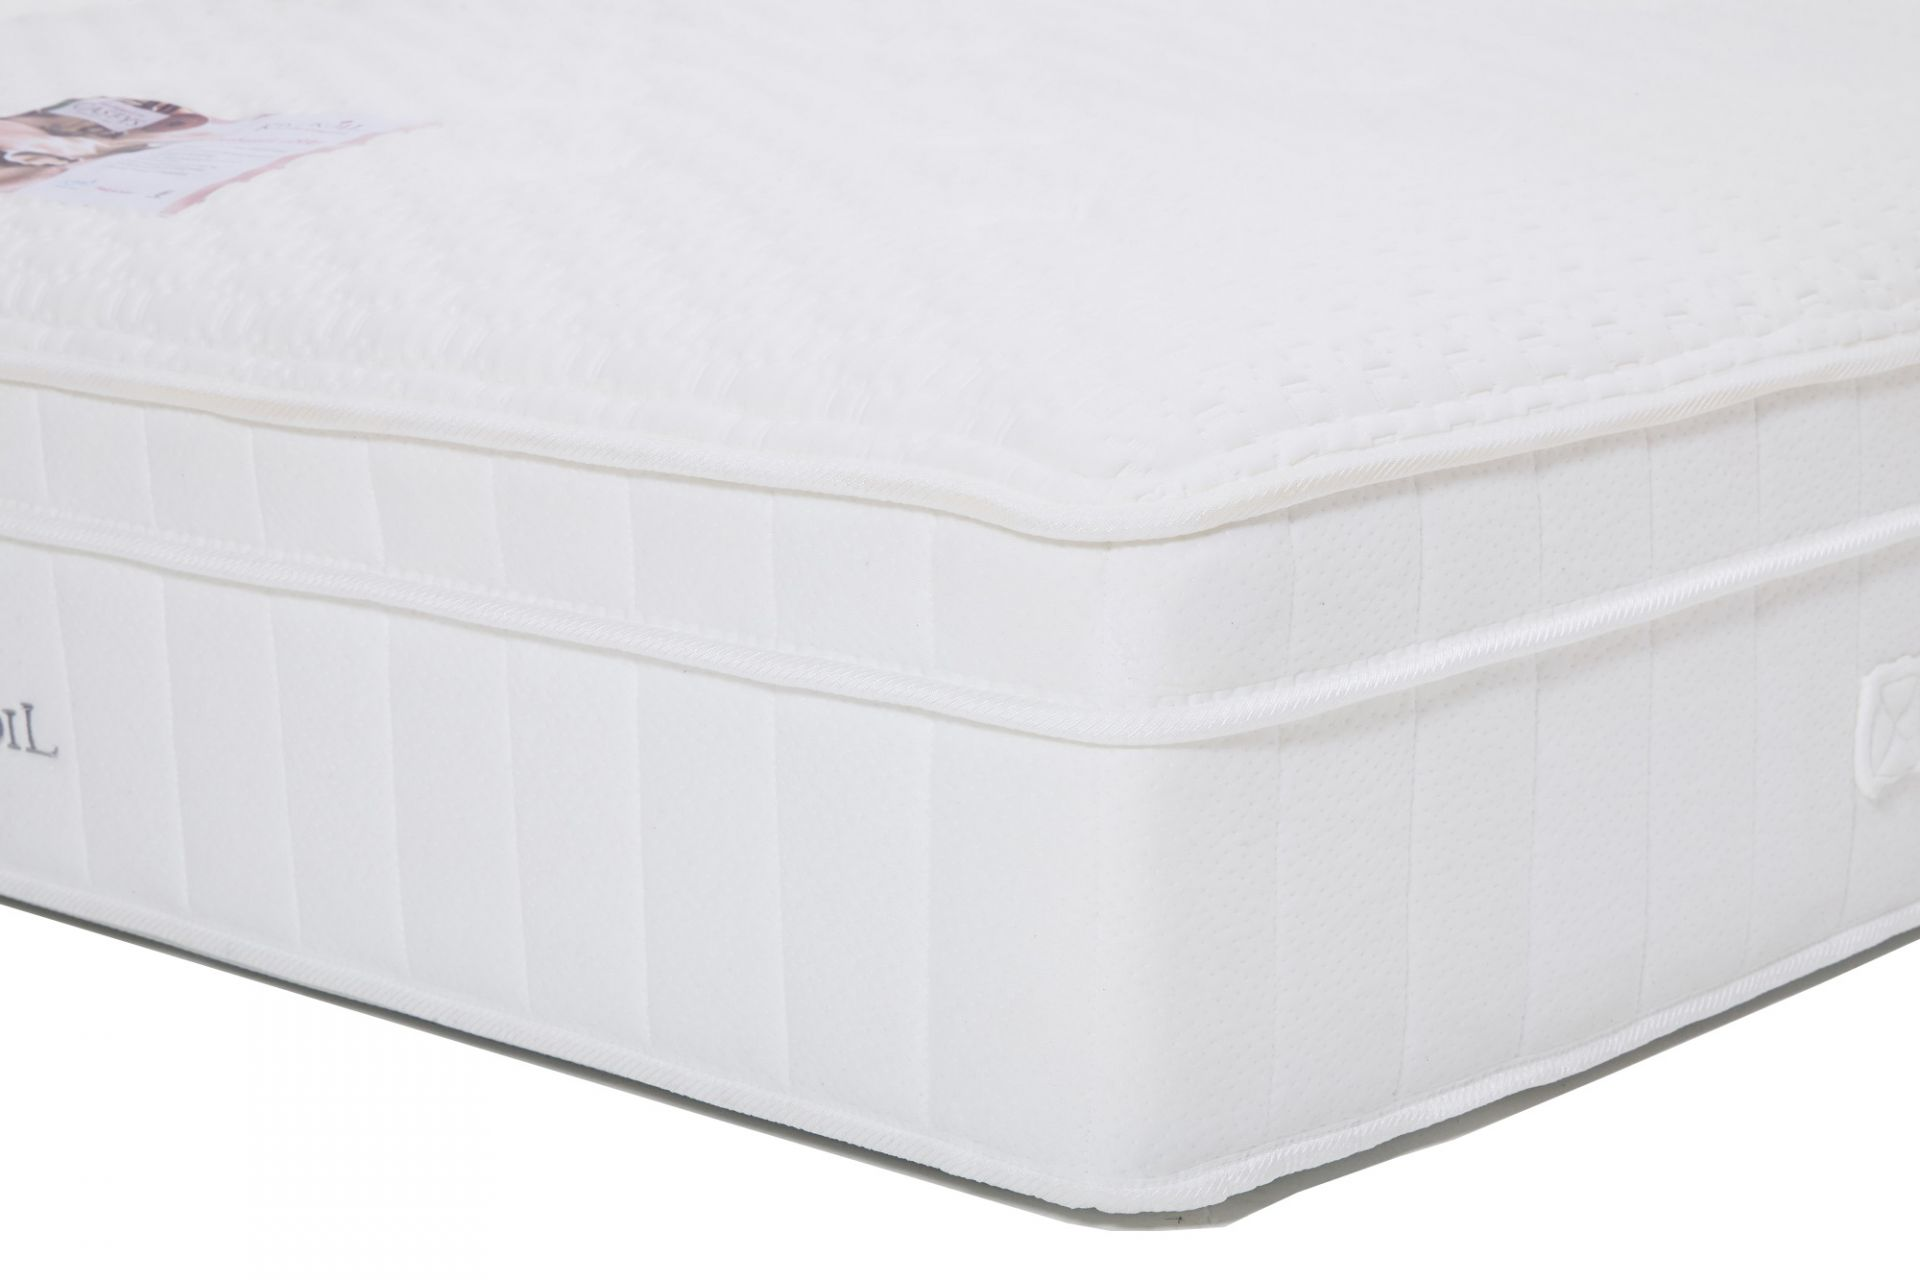 King Koil Celebration 1800 Mattress